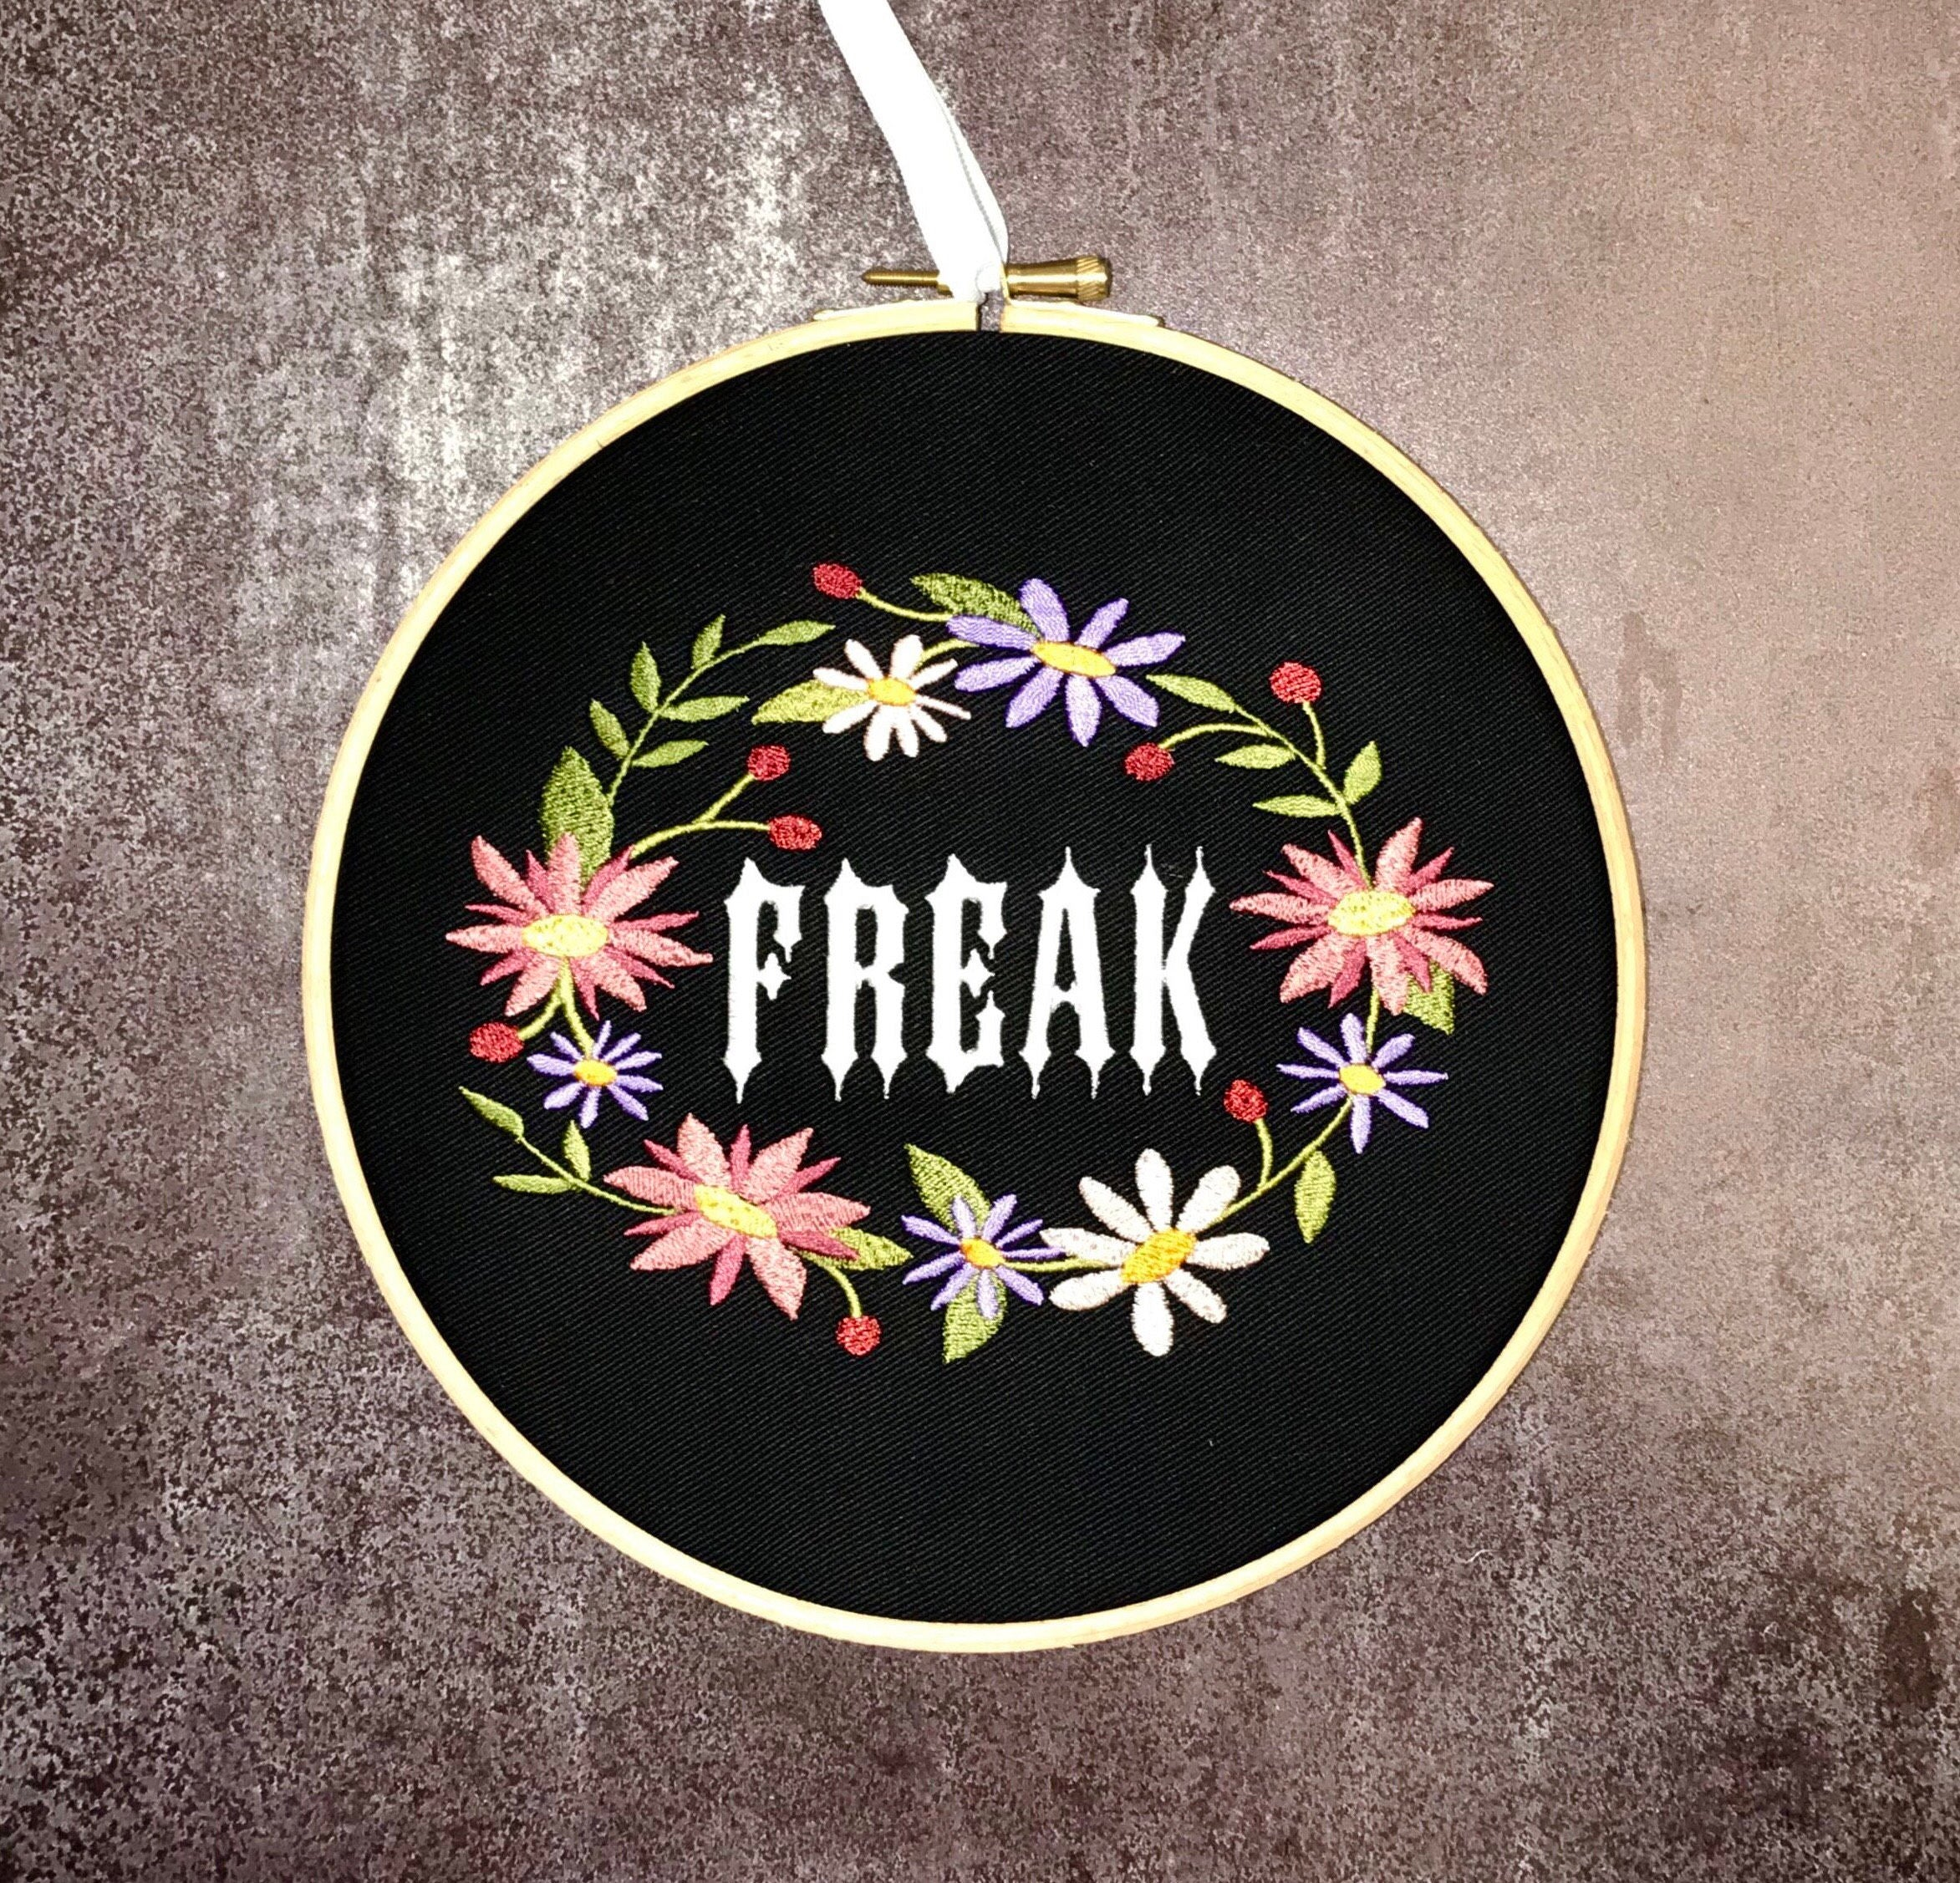 Freak with floral wreath, Embroidery hoop art